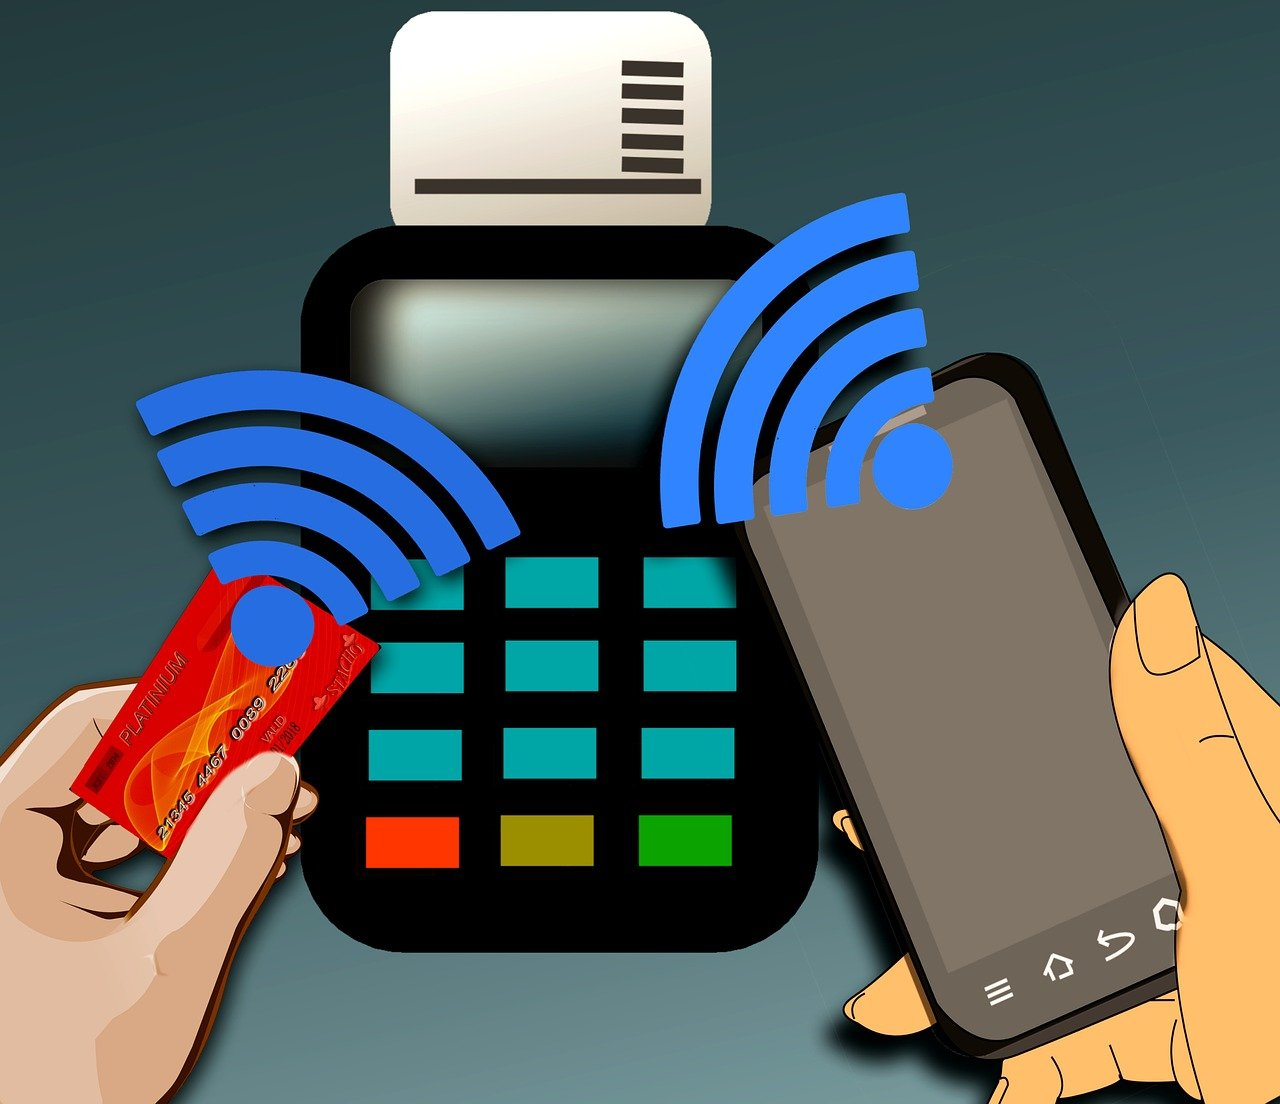 payment-systems-1169825_1280.jpg